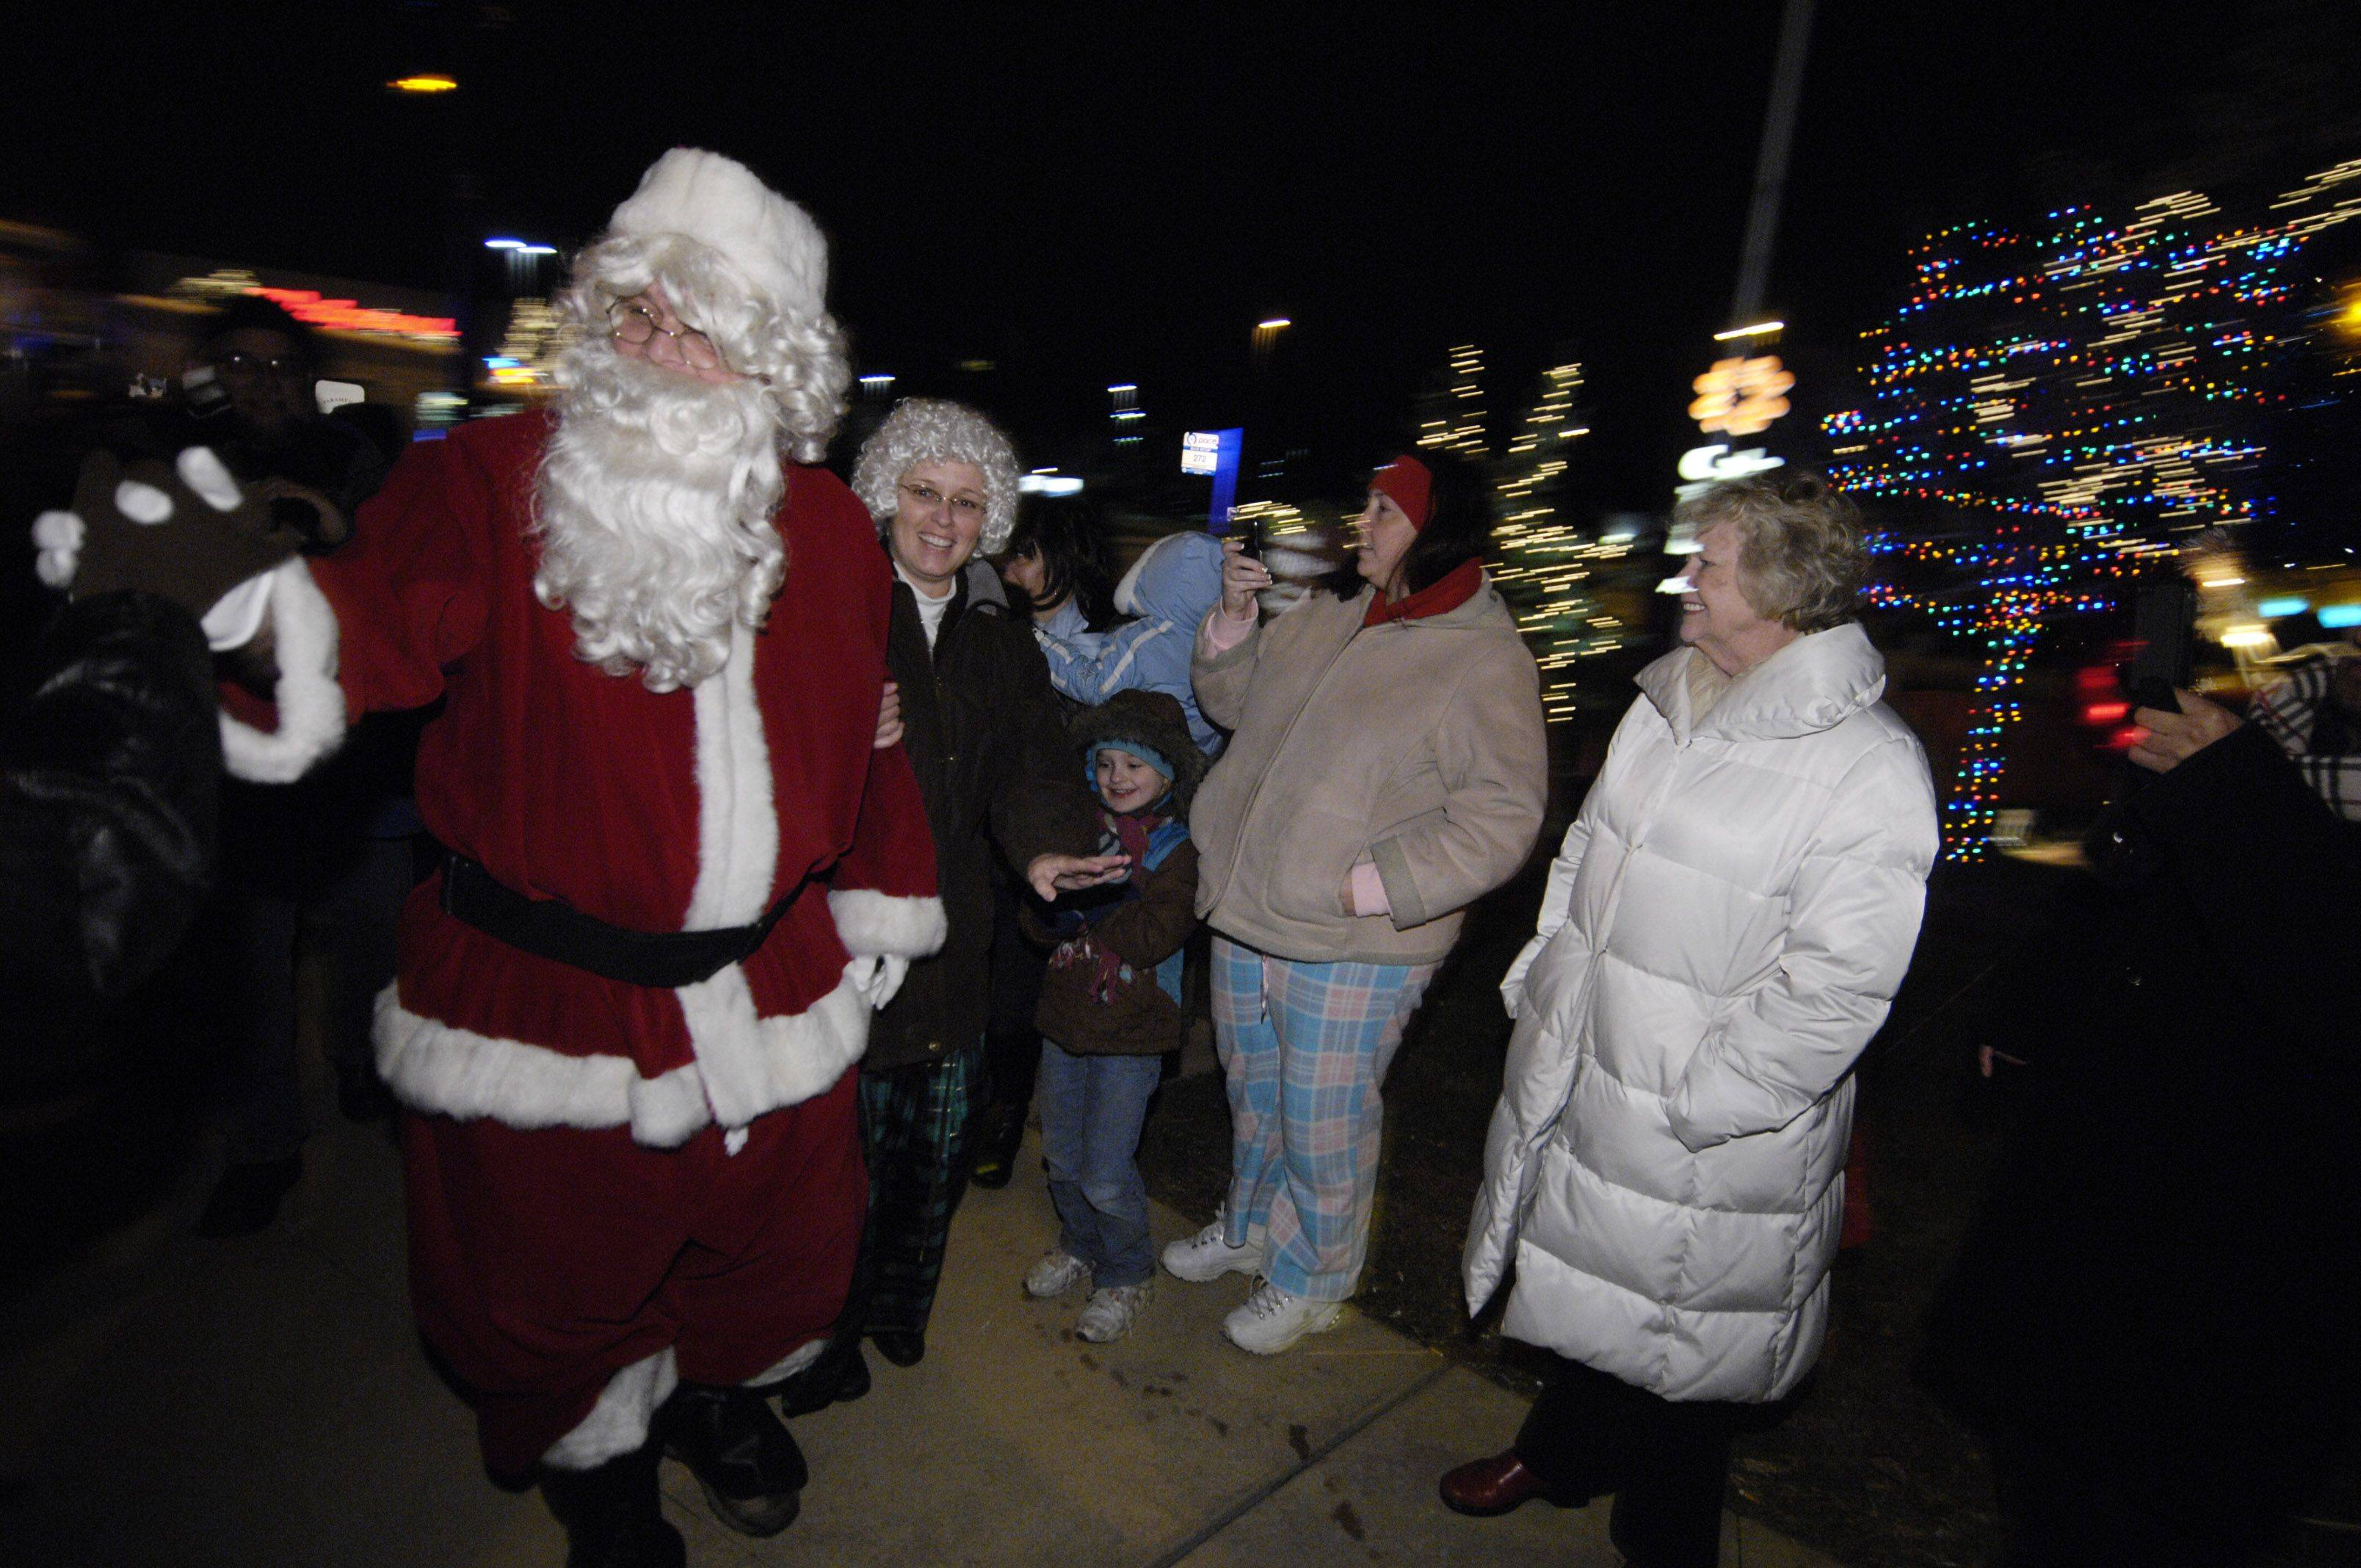 Mr. and Mrs. Claus visit the Christmas lighting celebration Sunday evening at Friendship Park in Wheeling.